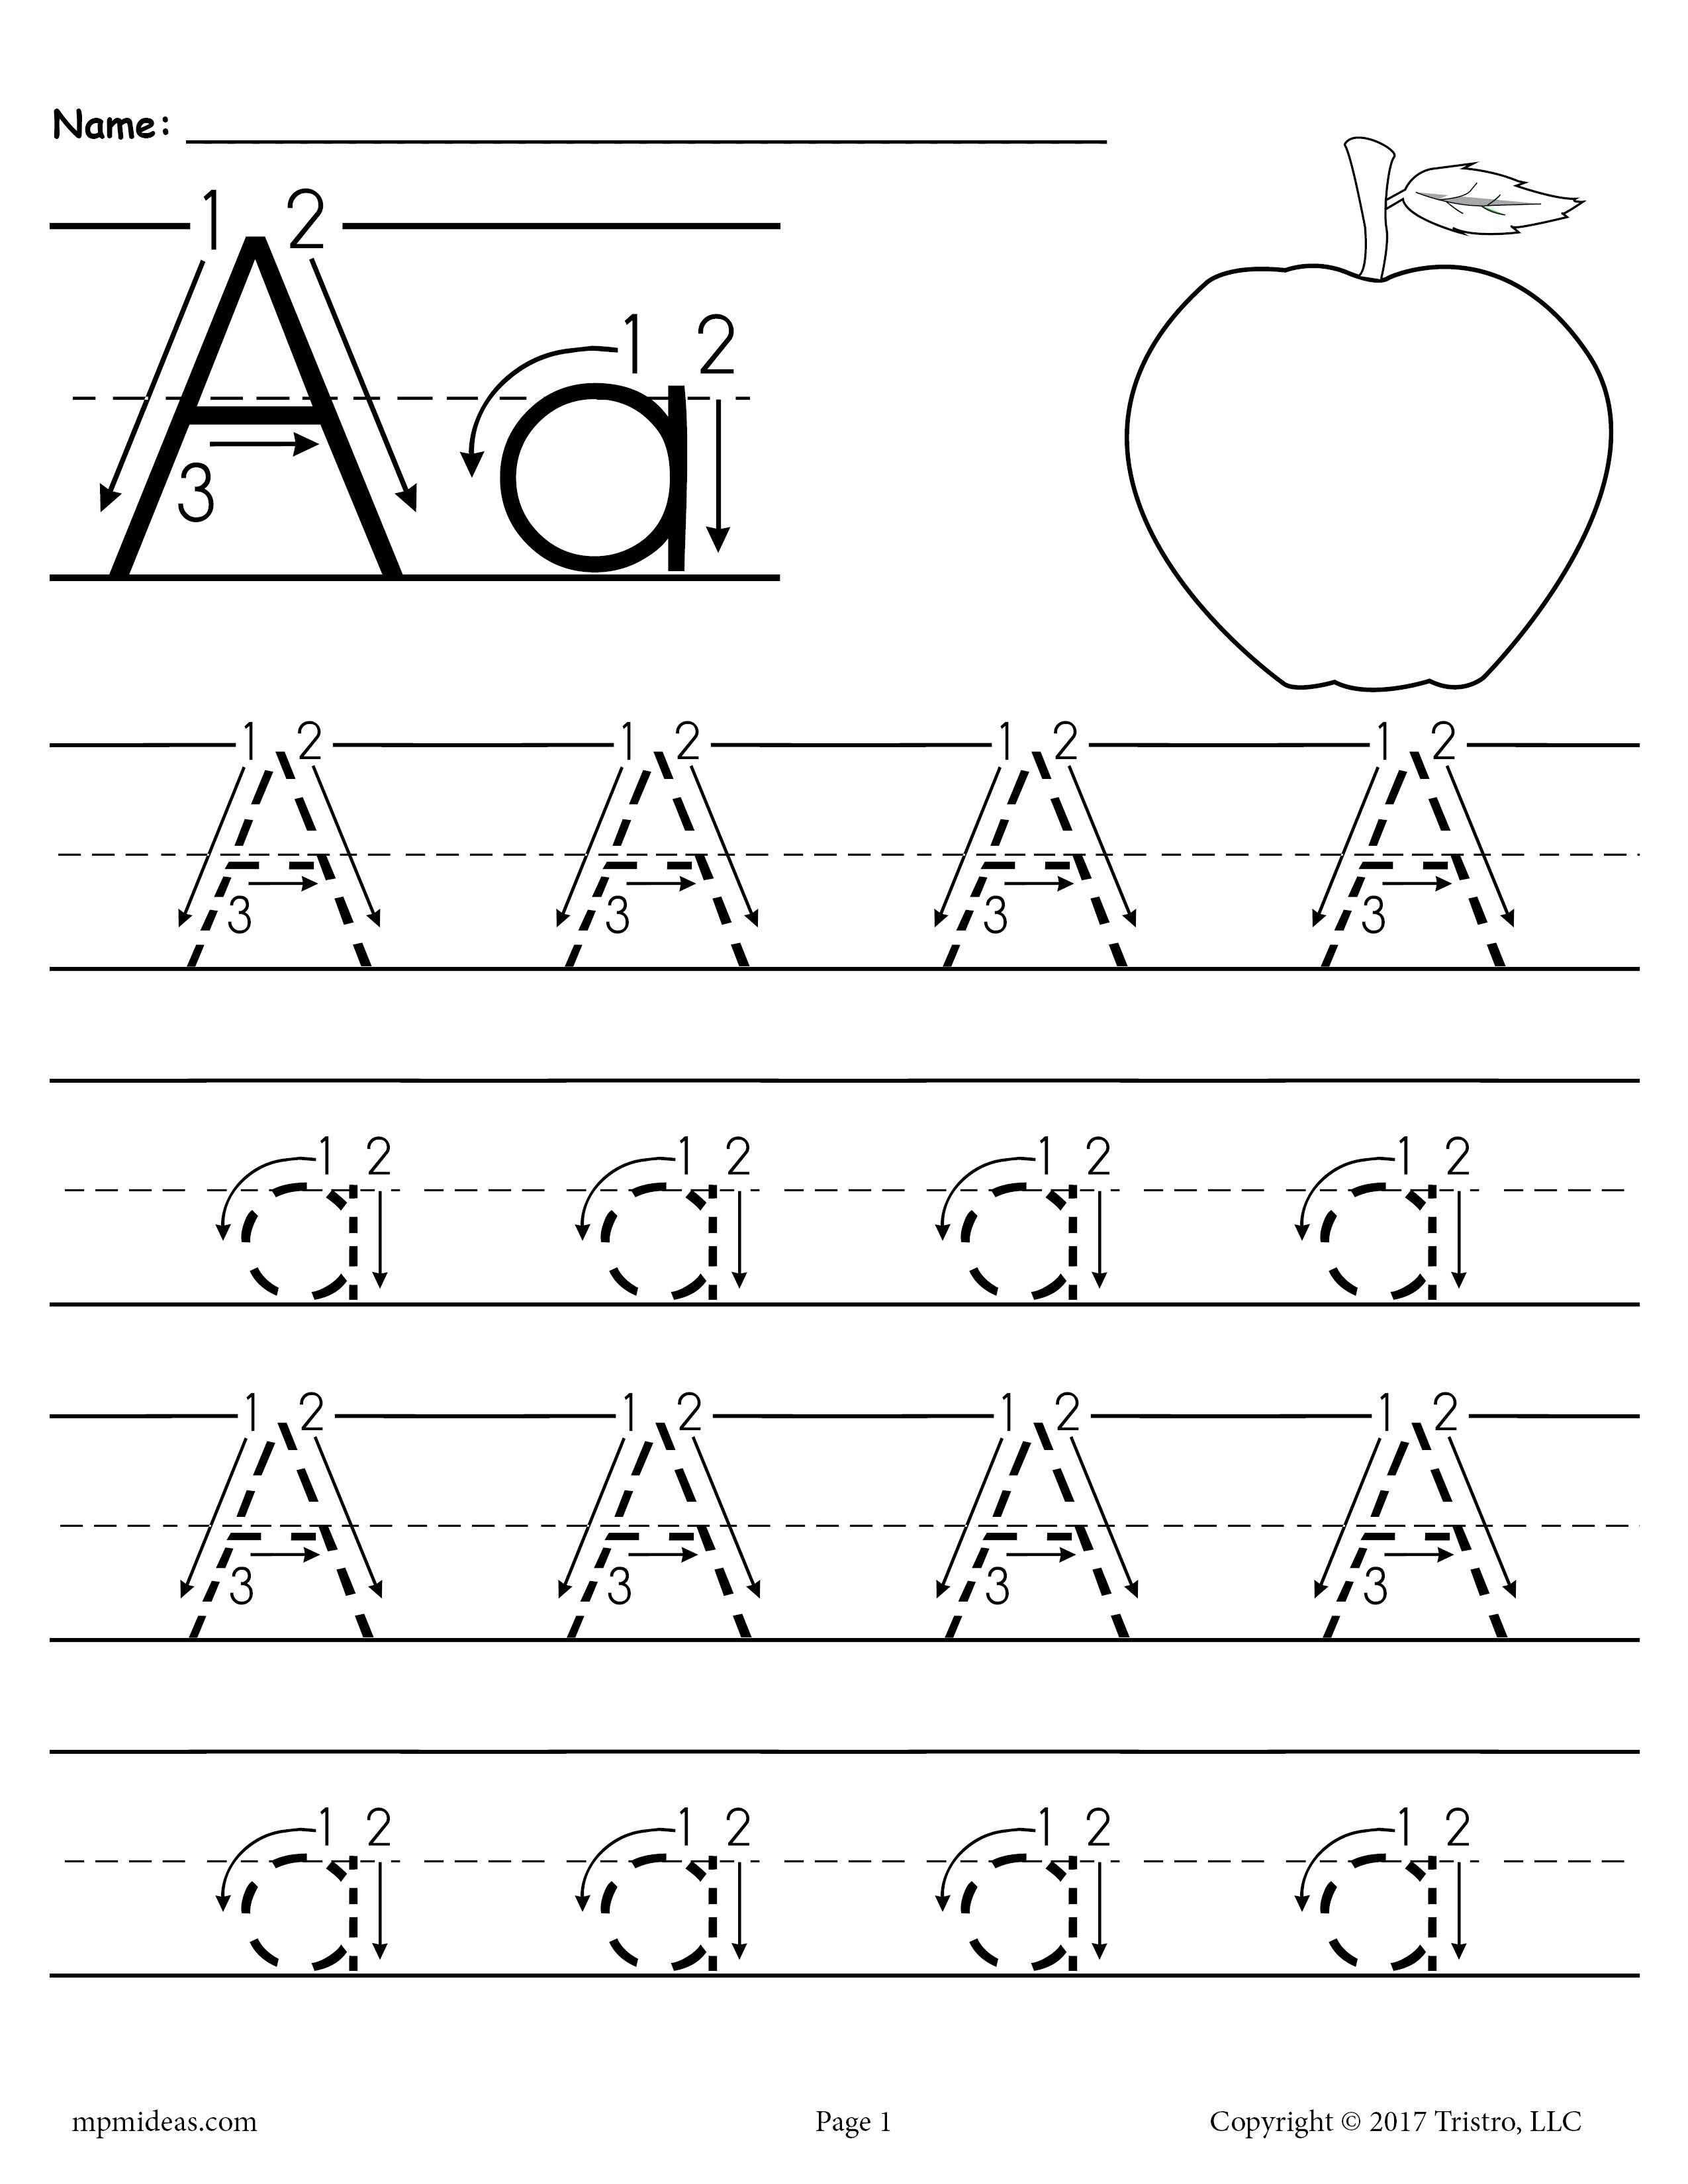 Printable Letter A Tracing Worksheet With Number And Arrow Guides Tracing Worksheets Letter Tracing Printables Alphabet Tracing Worksheets